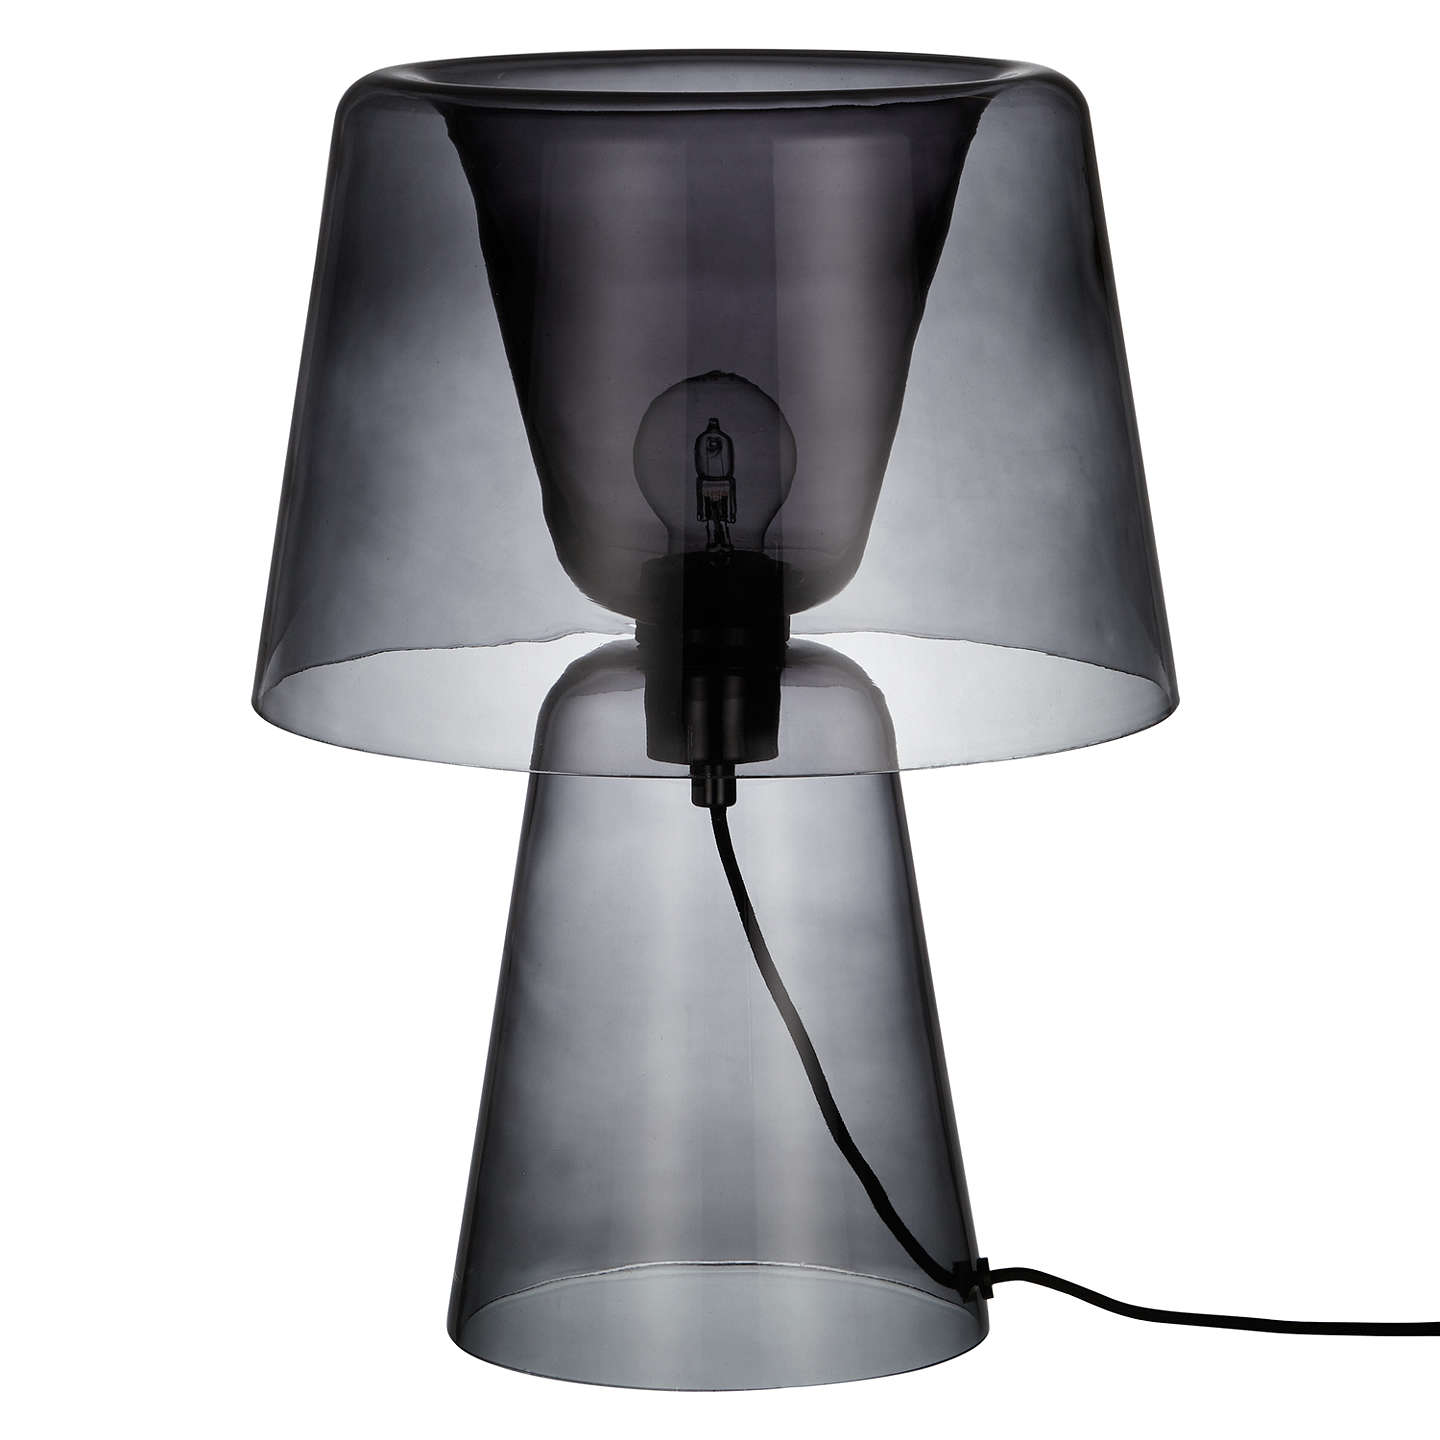 Design project by john lewis large glass table lamp for John lewis design service